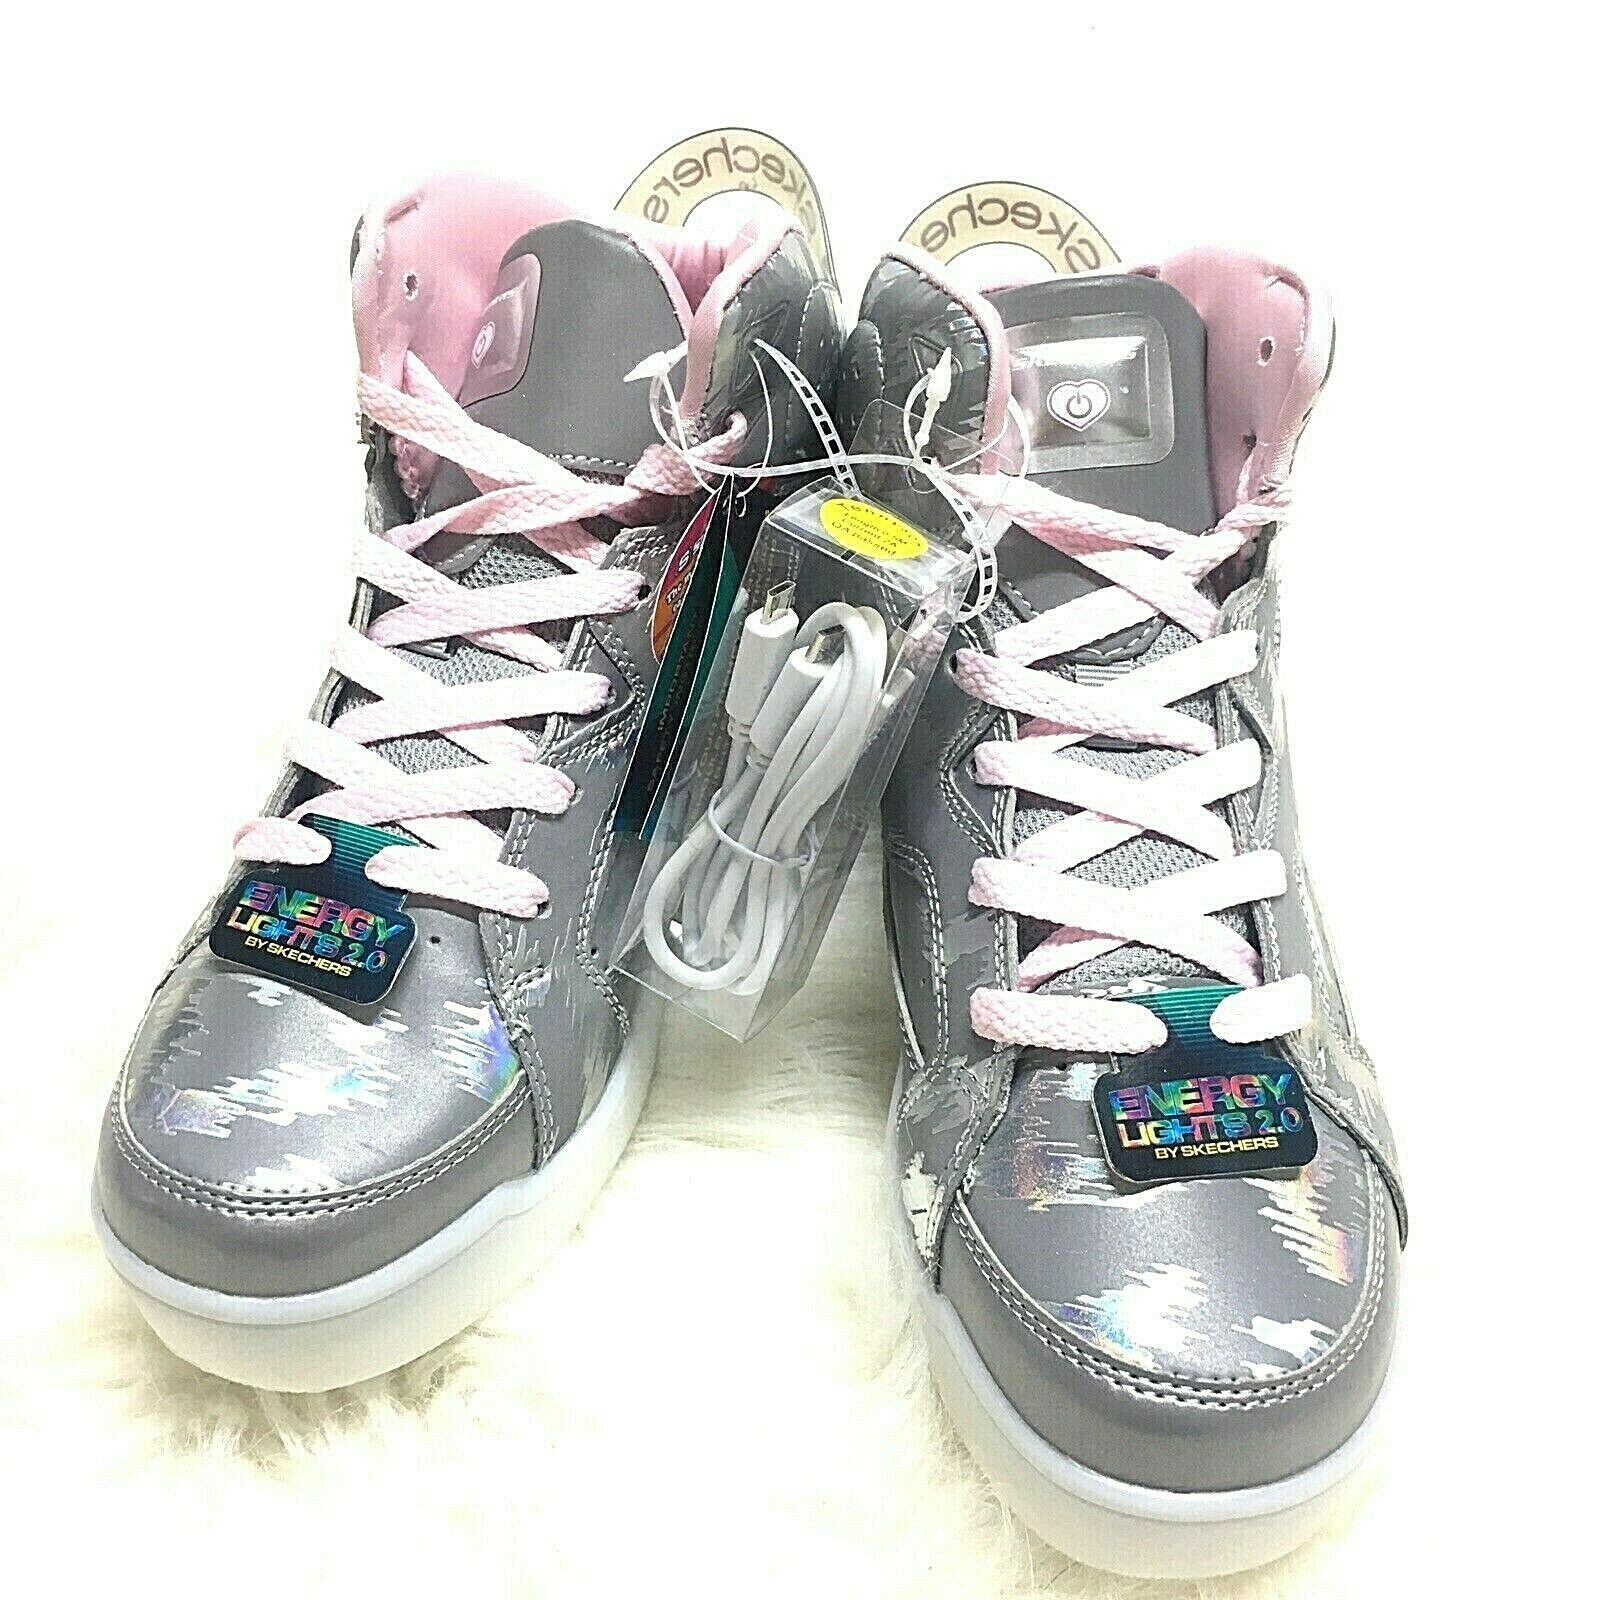 Sketchers Pink Grey Holographic High Top Women Sneakers Energy Lights 2.0 Sz 6